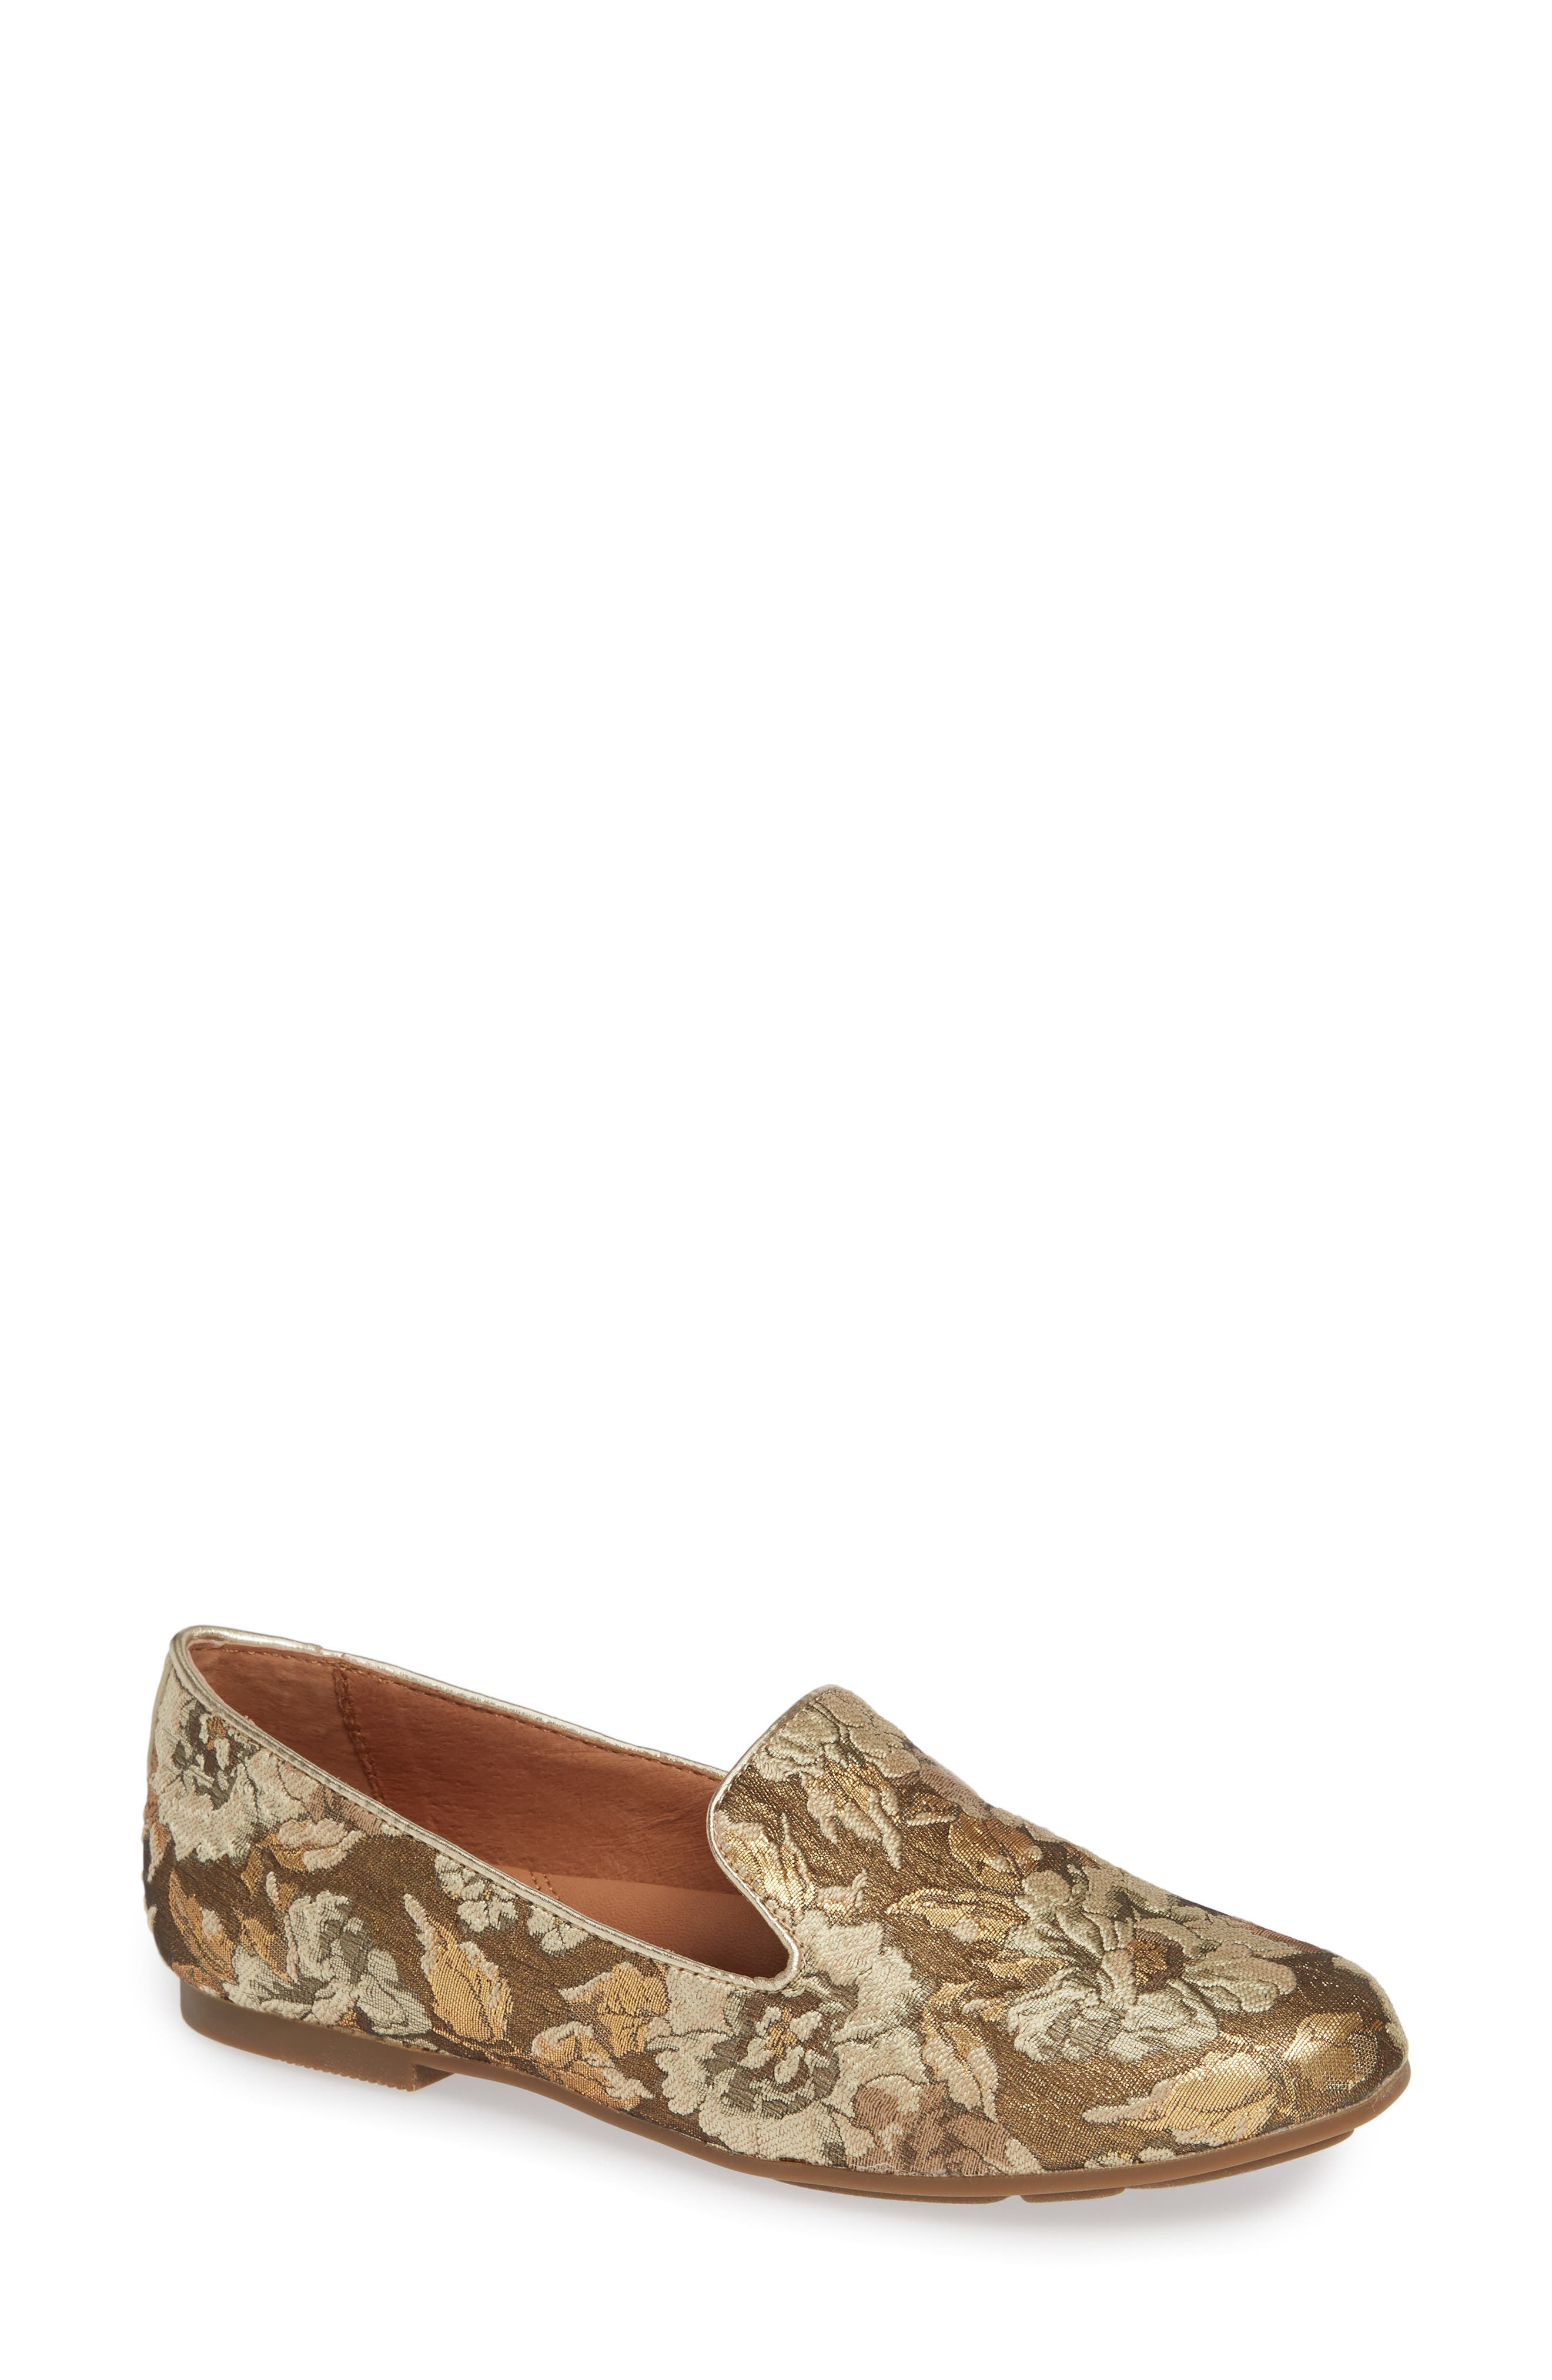 GENTLE SOULS BY KENNETH COLE, Eugene Flat, Main thumbnail 1, color, GOLD MULTI FABRIC